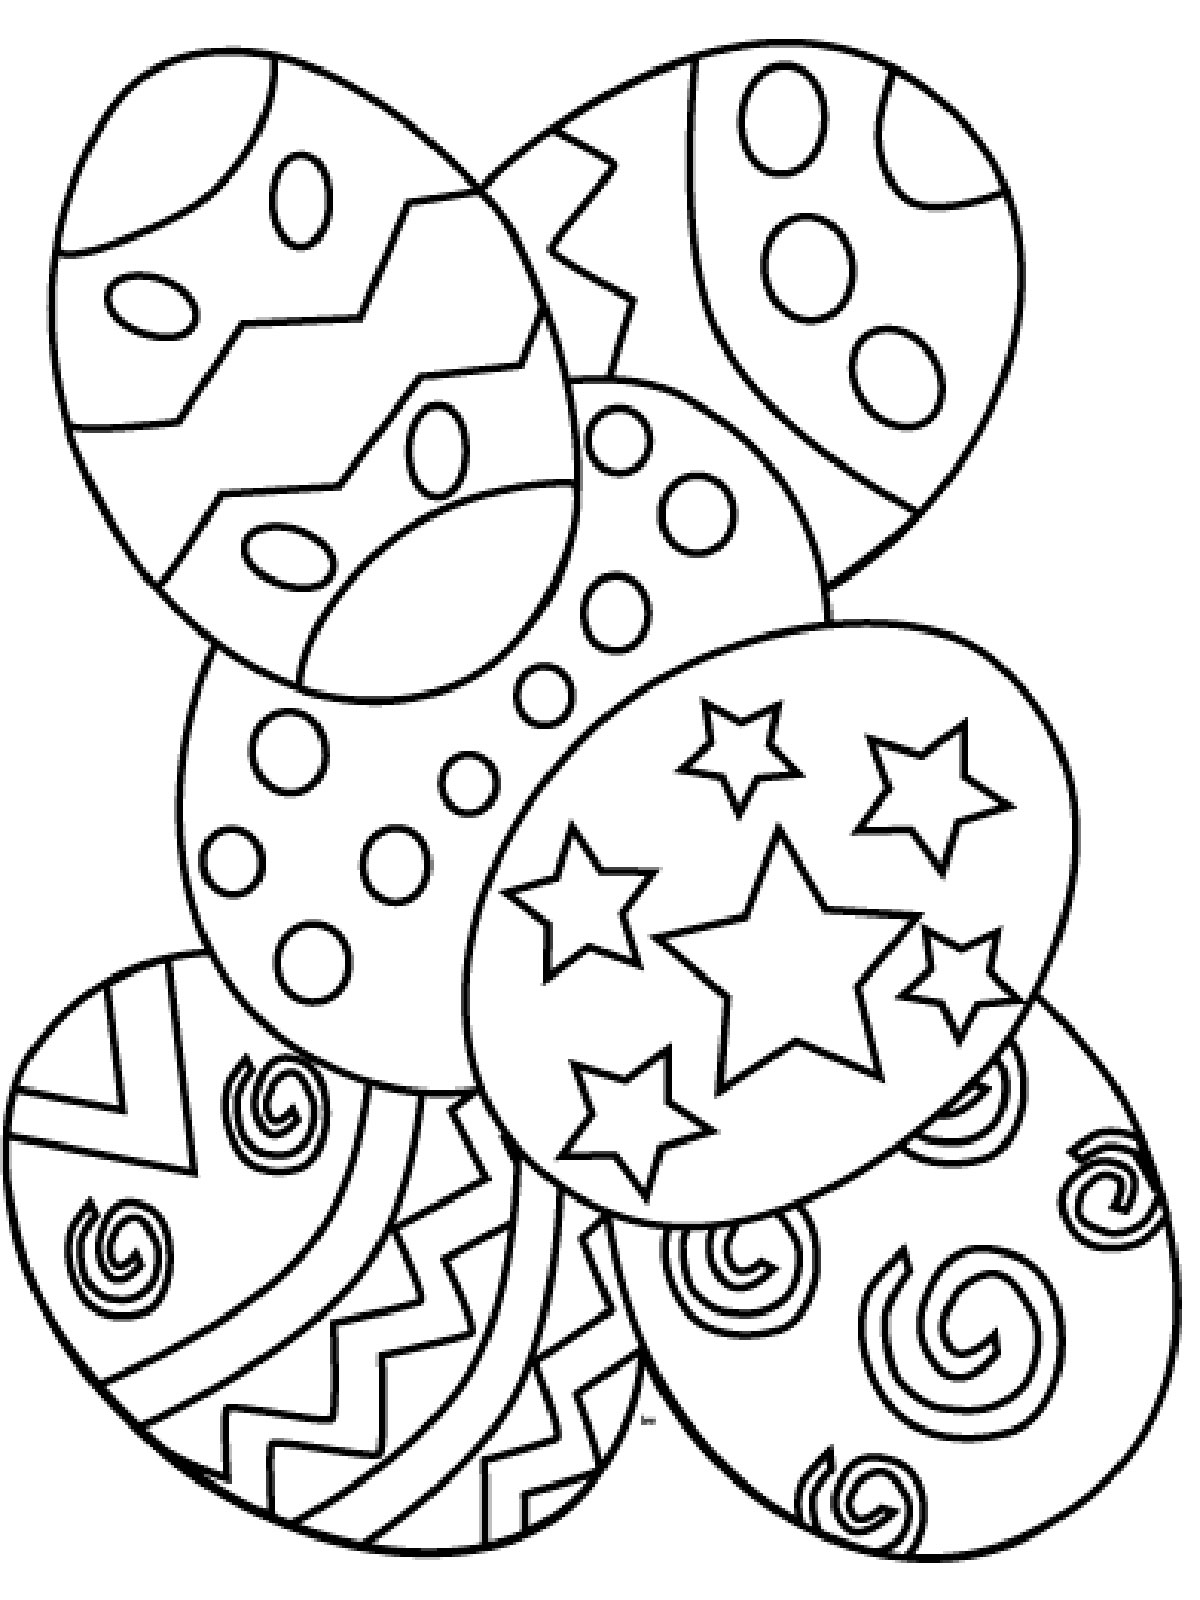 printable easter coloring pages easter coloring pages for childrens printable for free easter pages coloring printable